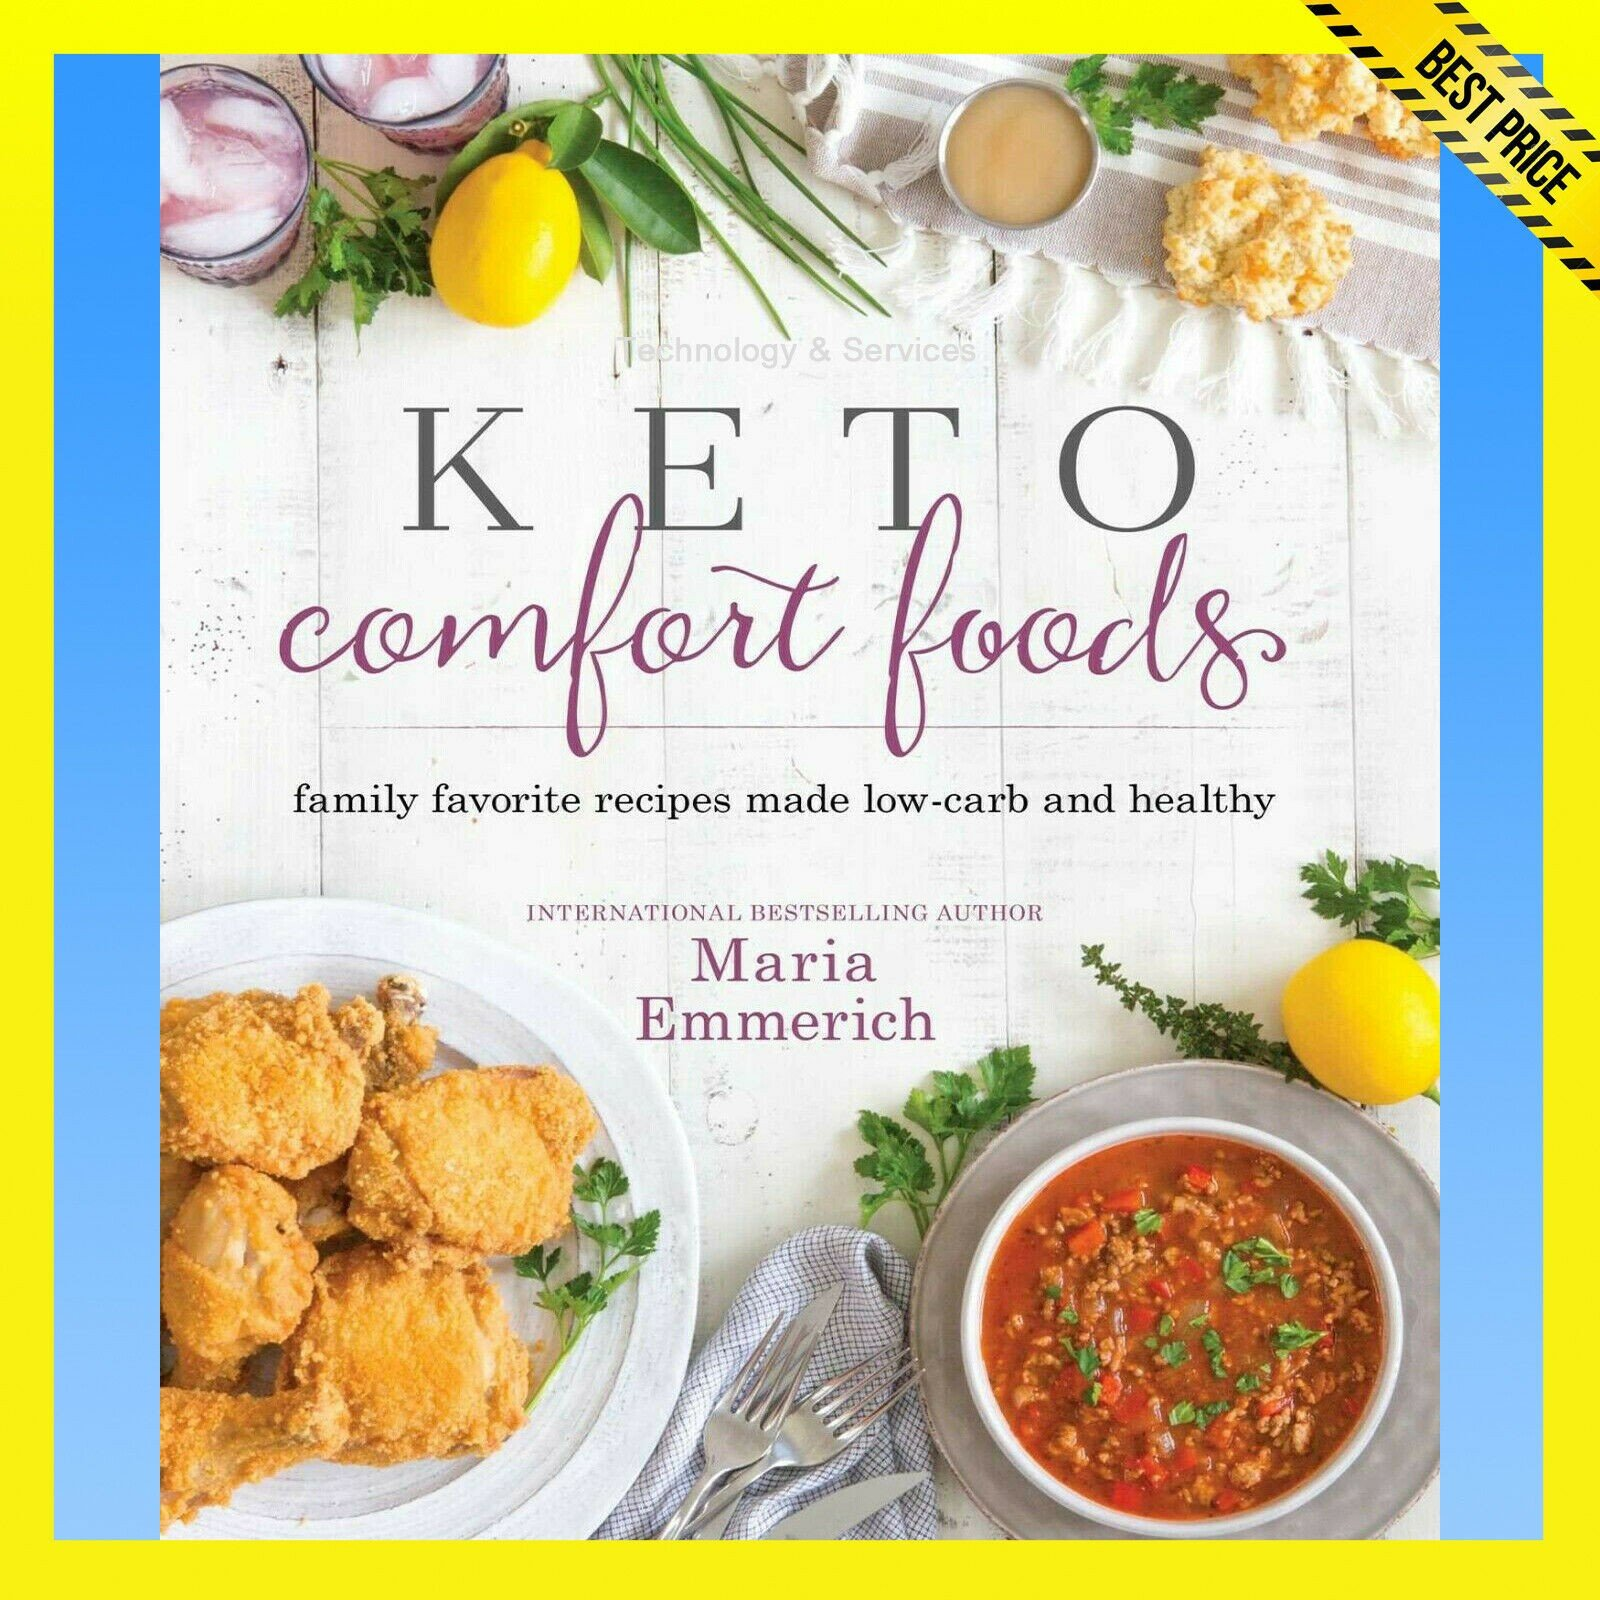 ✅ Keto Comfort Food ✅ Family favorite recipes made low-carb and healthy ✅ E-BOOK